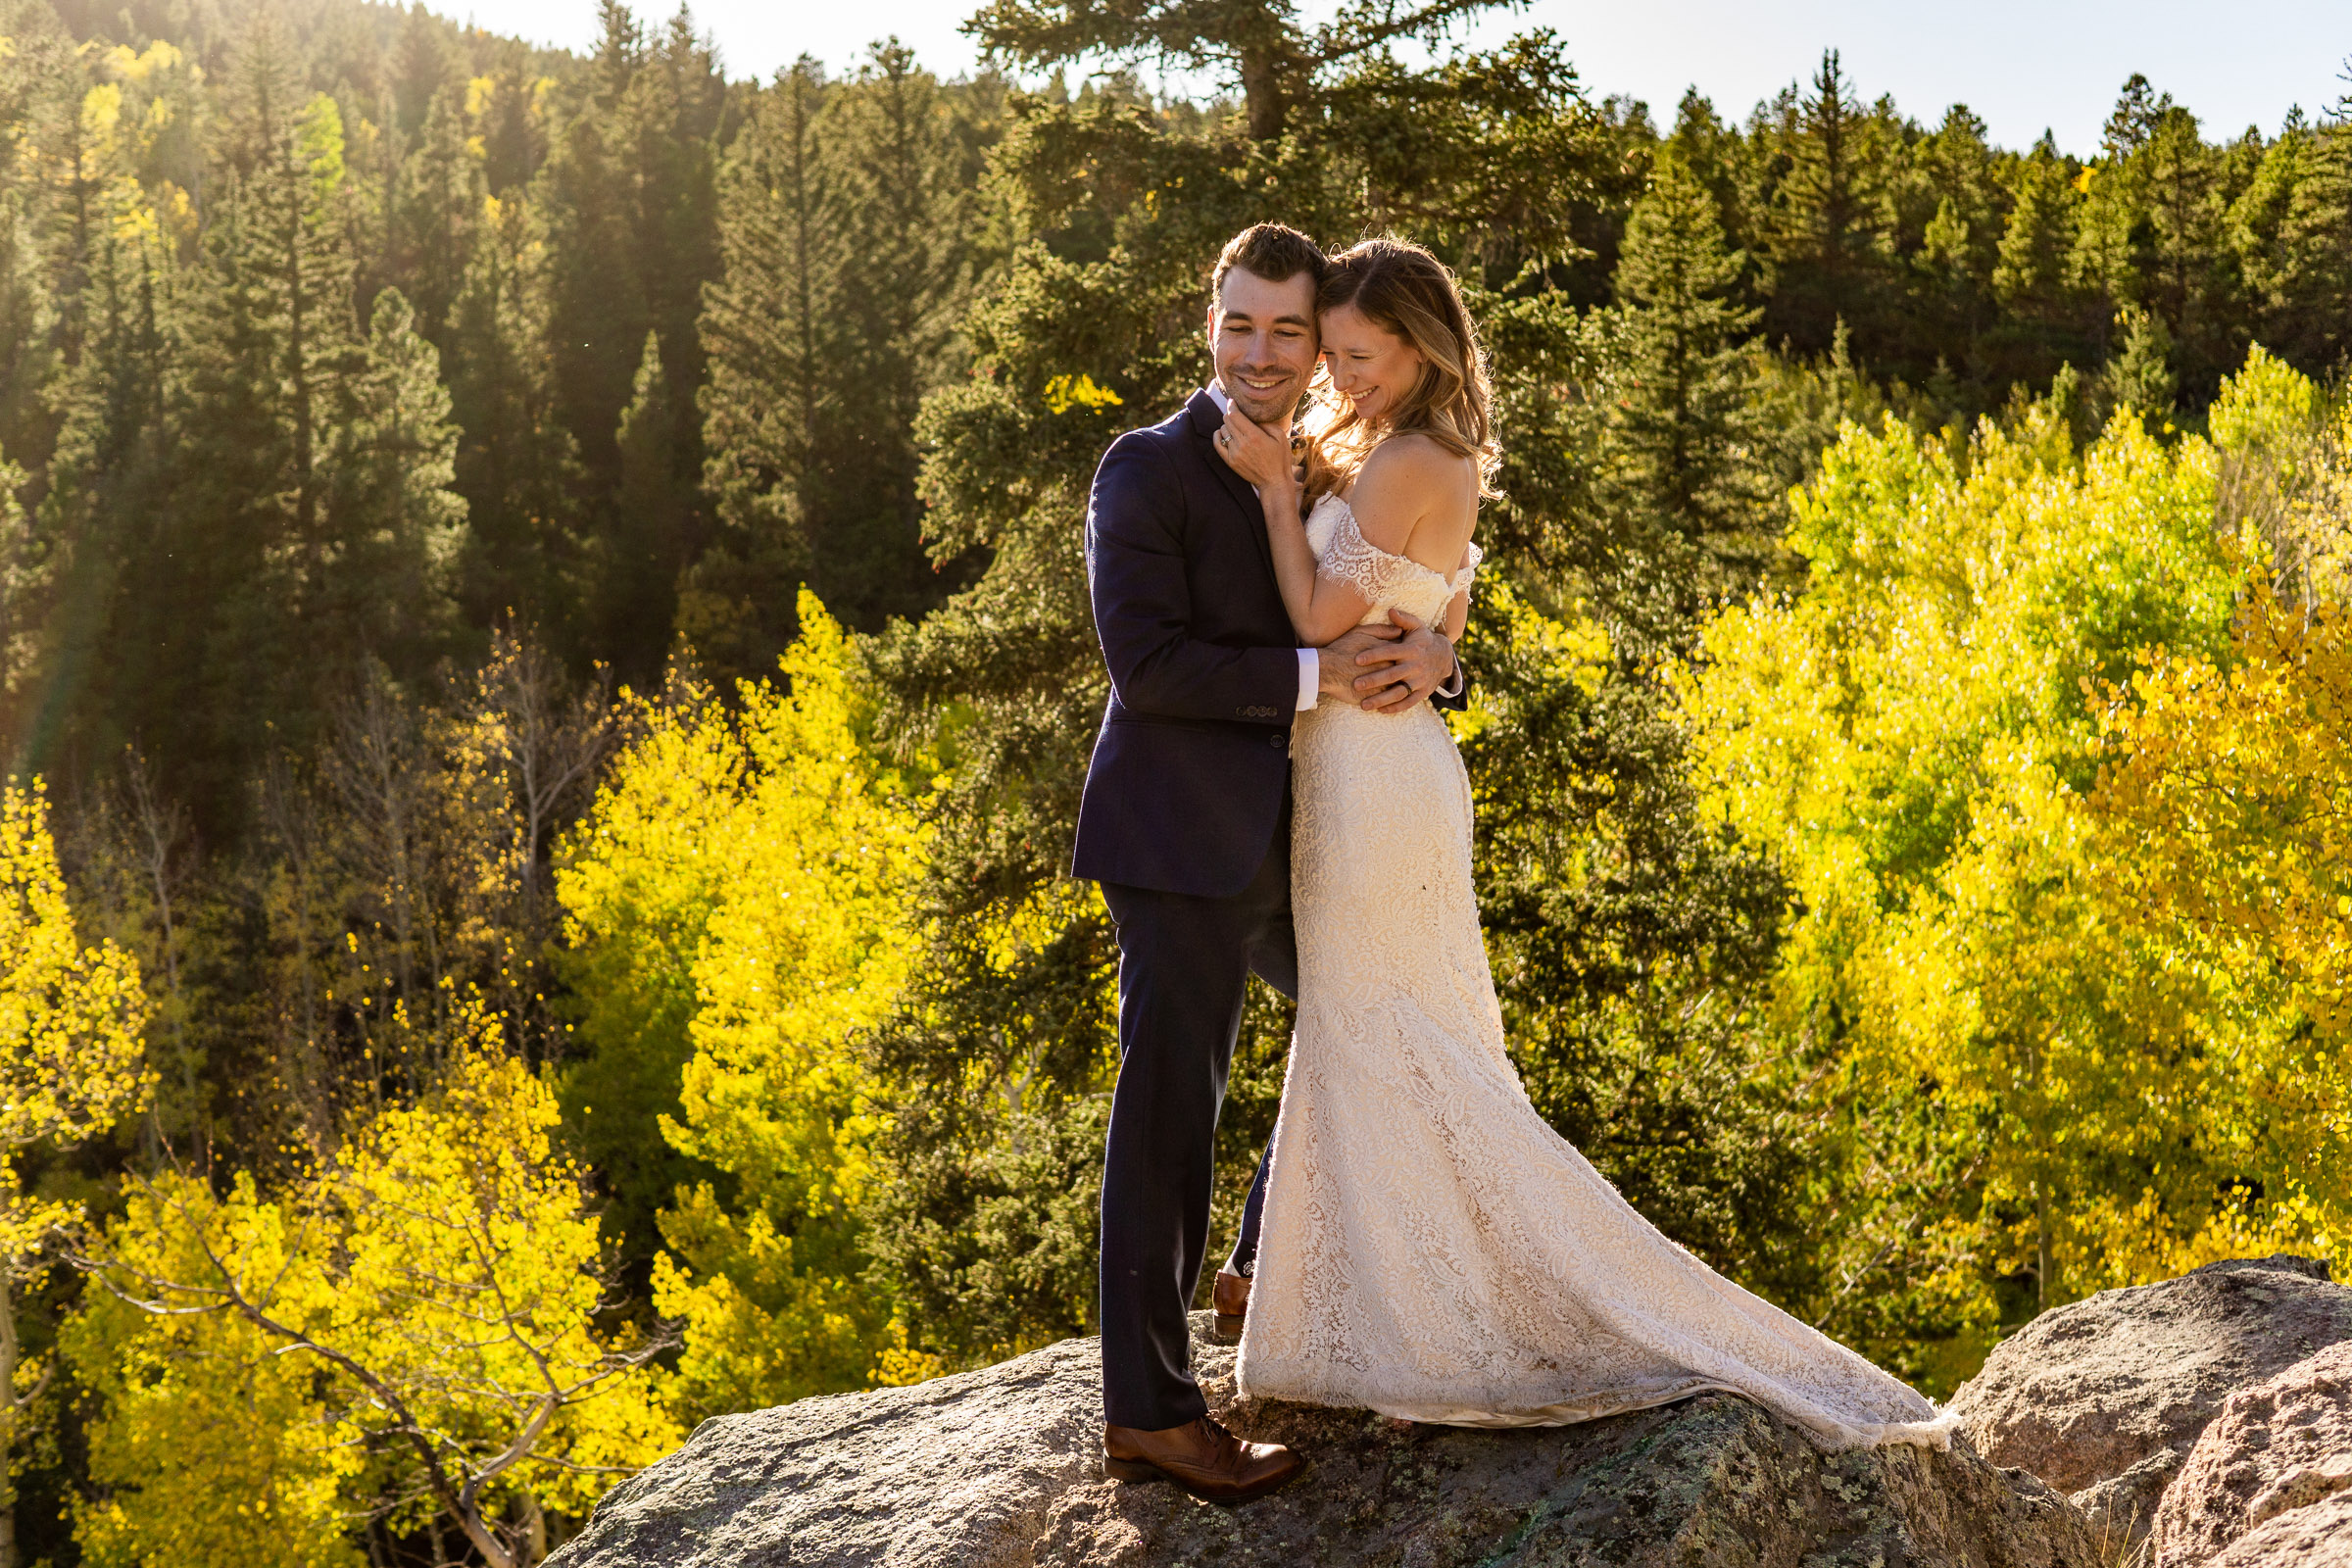 A bride and groom romantically embracing in front of a golden aspen forest during fall in the Colorado mountains. Photo by Gabby Jockers Photography. colorado elopement, colorado elopement photography, golden gate canyon state park, sunset elopement, hiking elopement, fall wedding, mountain wedding, adventure photos, mountain elopement, fall elopement, adventure elopement, denver colorado photographer, elopement photographer